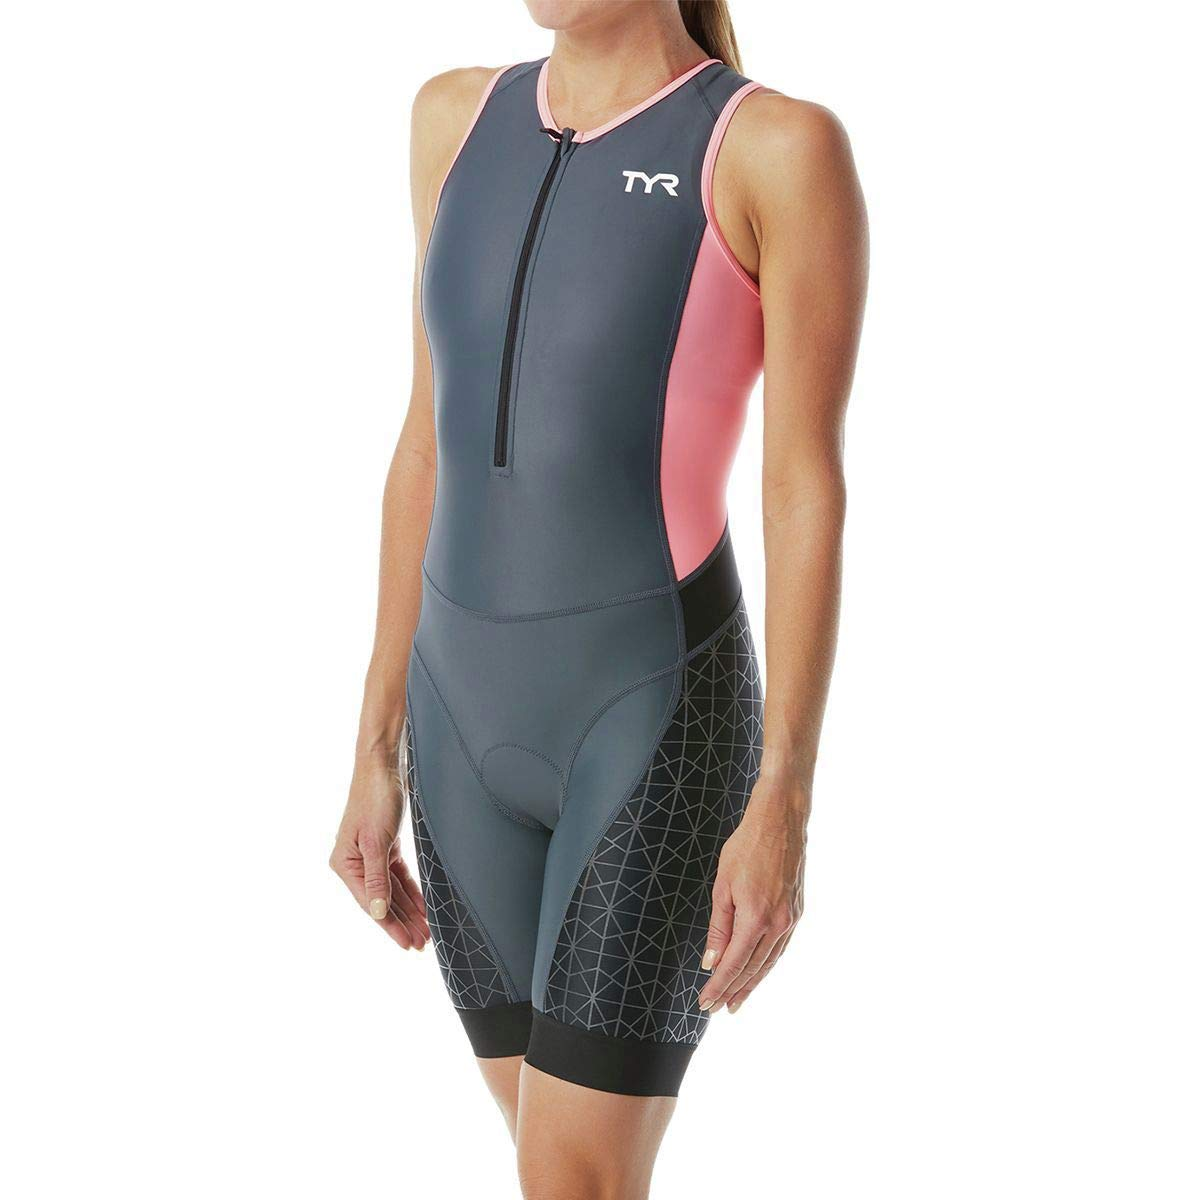 TYR Womens Competitor Tri Suit